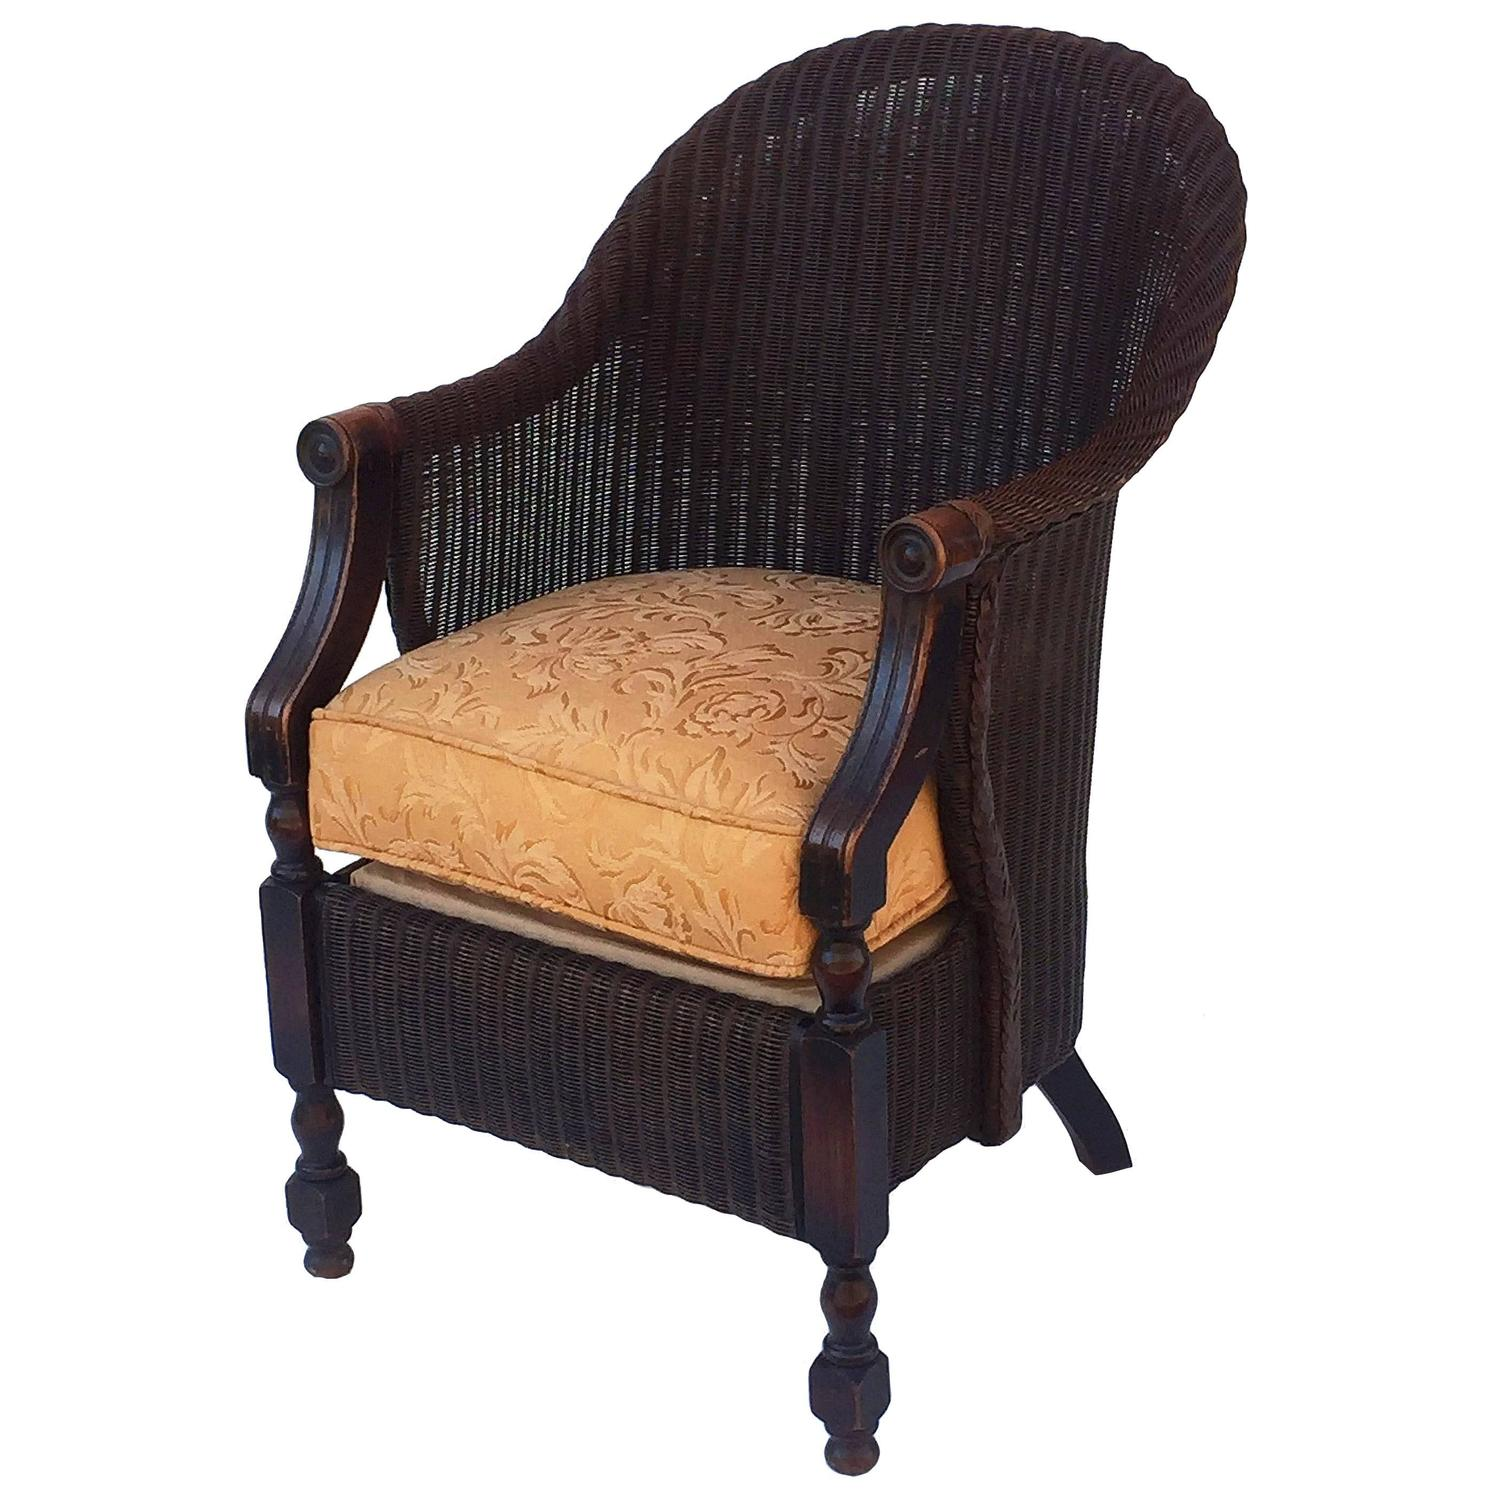 Large lloyd loom armchair with cushion seat at 1stdibs for H furniture loom chair